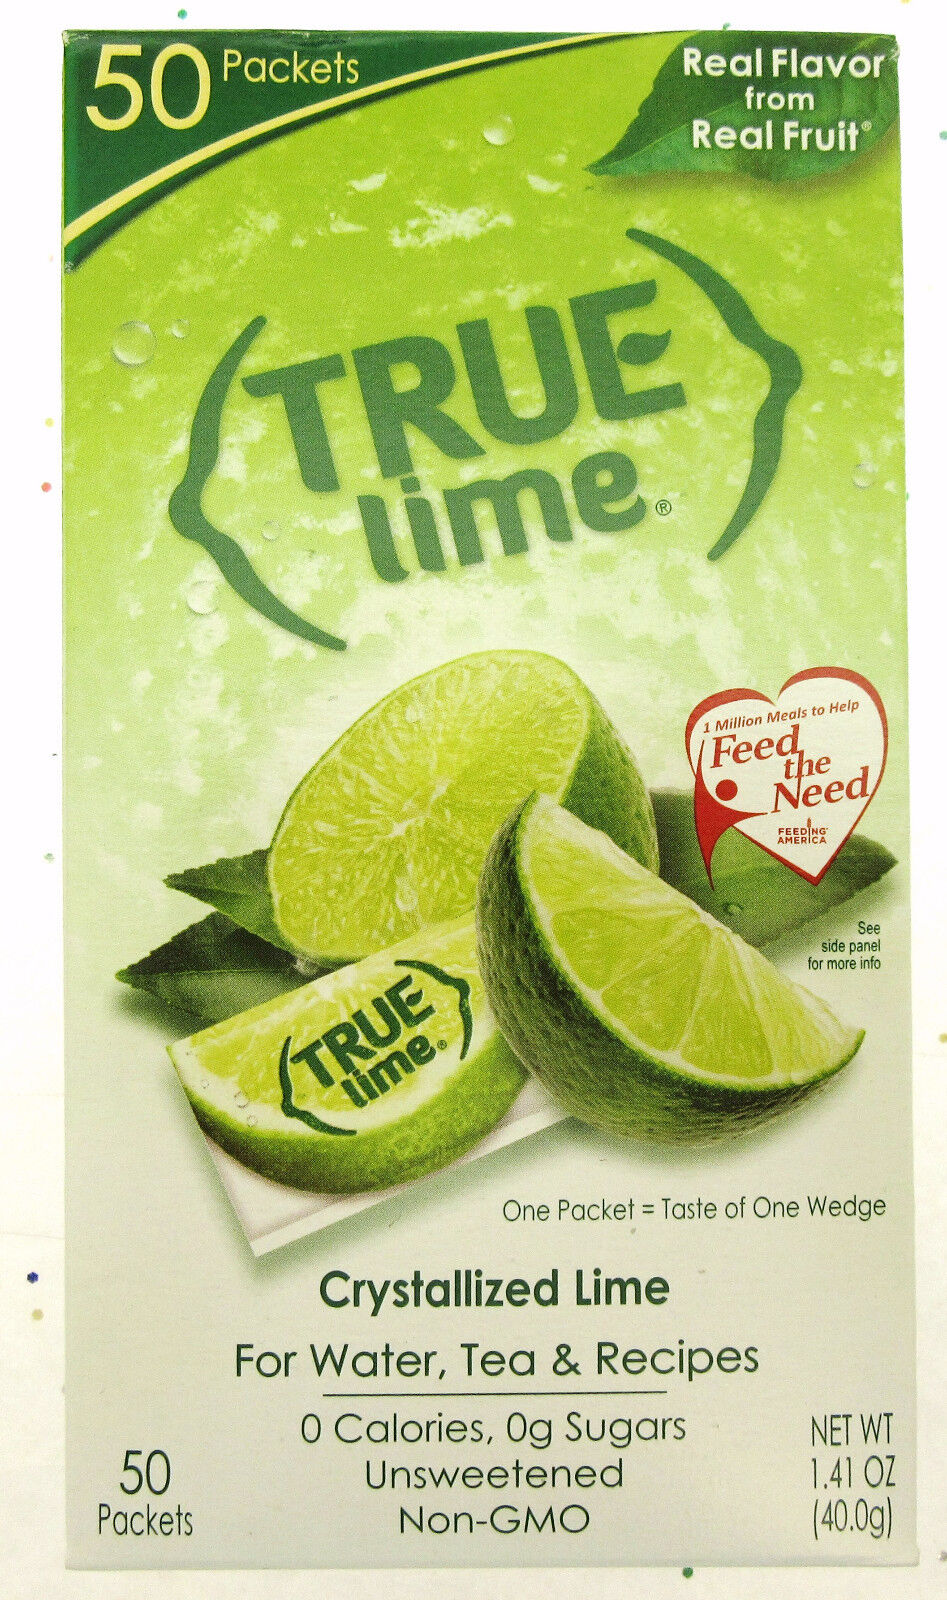 crystallized lime real flavor from real fruit